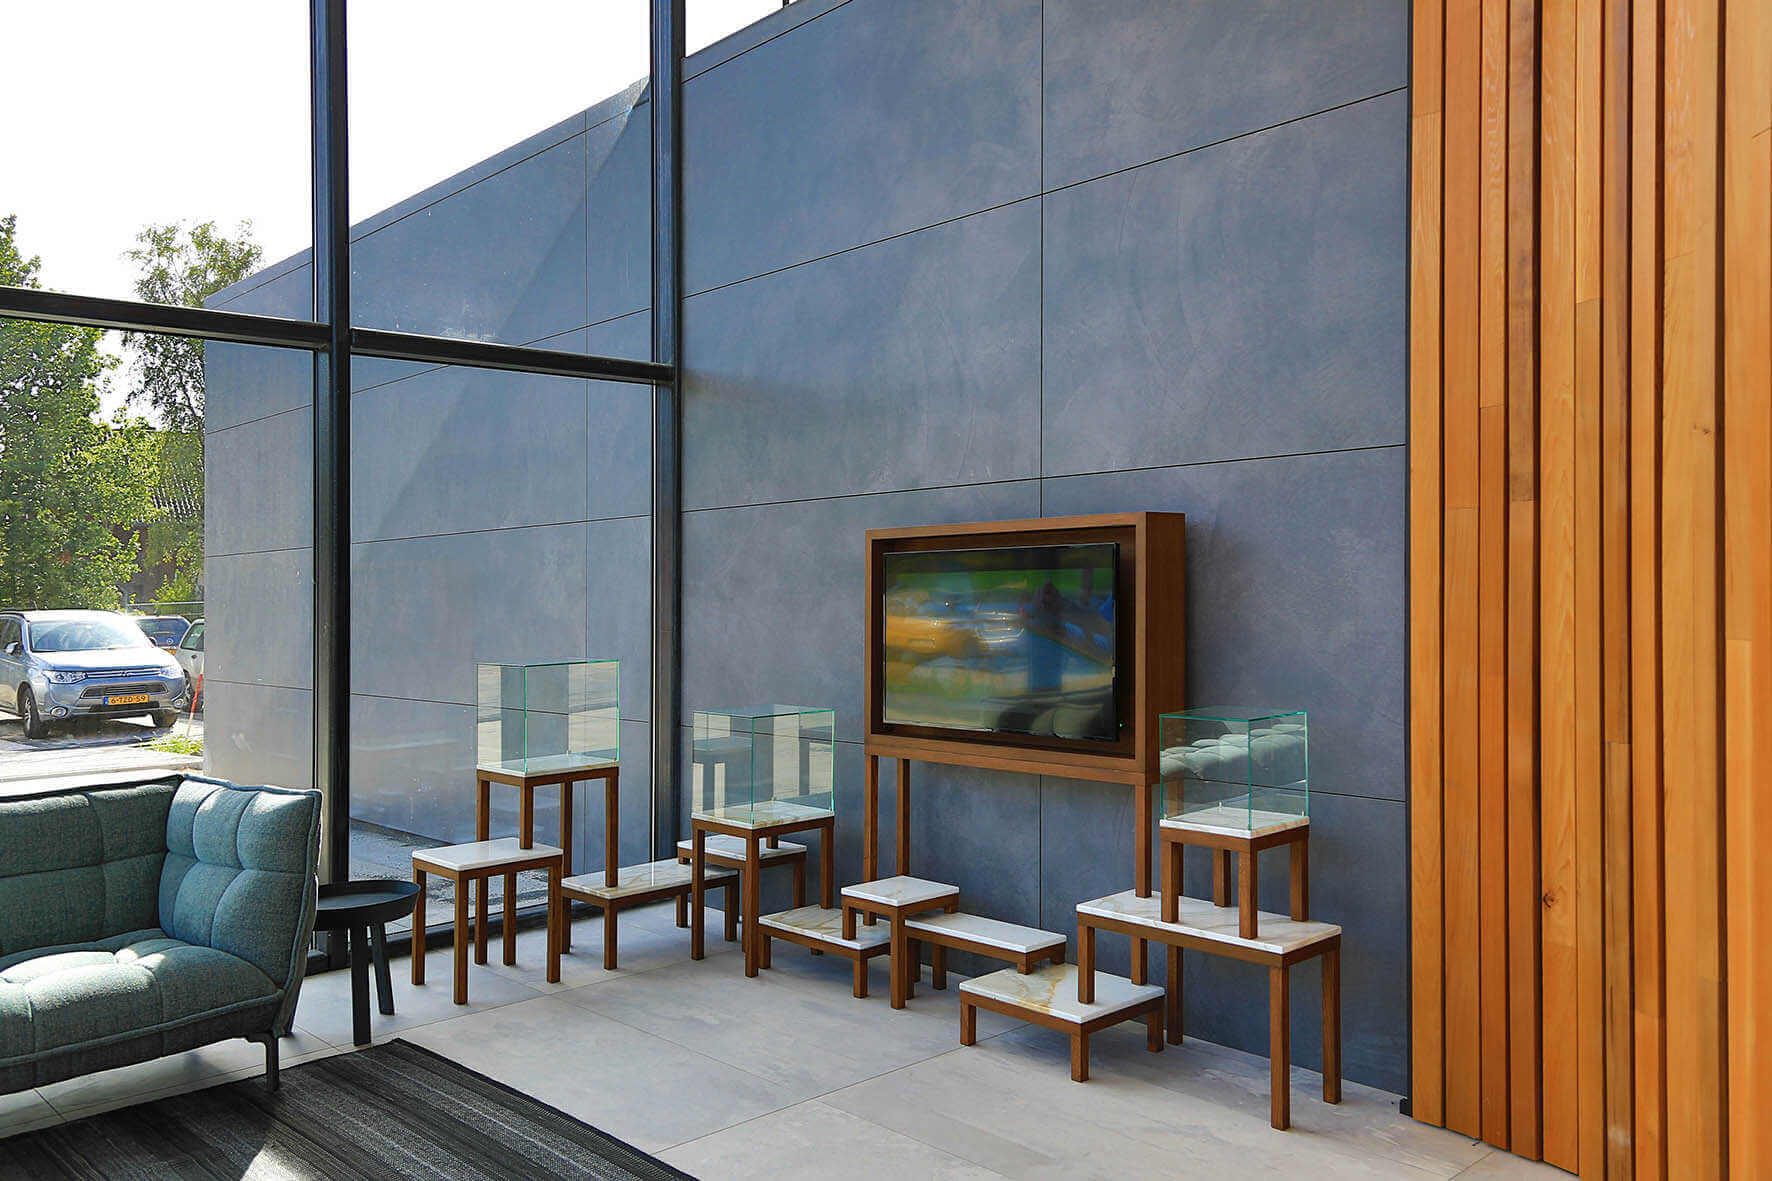 Porcelain slabs in interior design projects